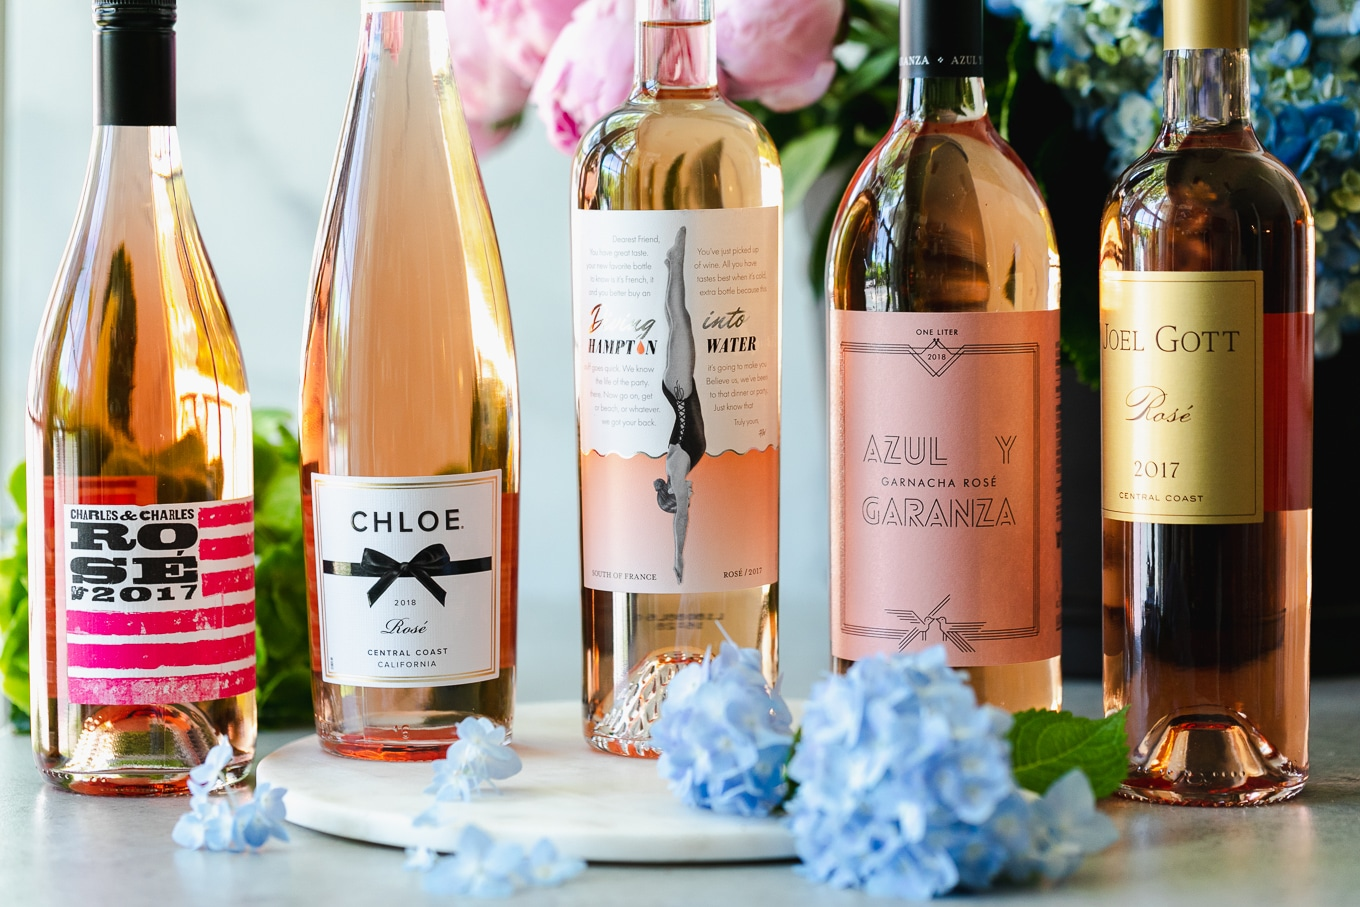 Shot of bottles of rosé with flowers in the background